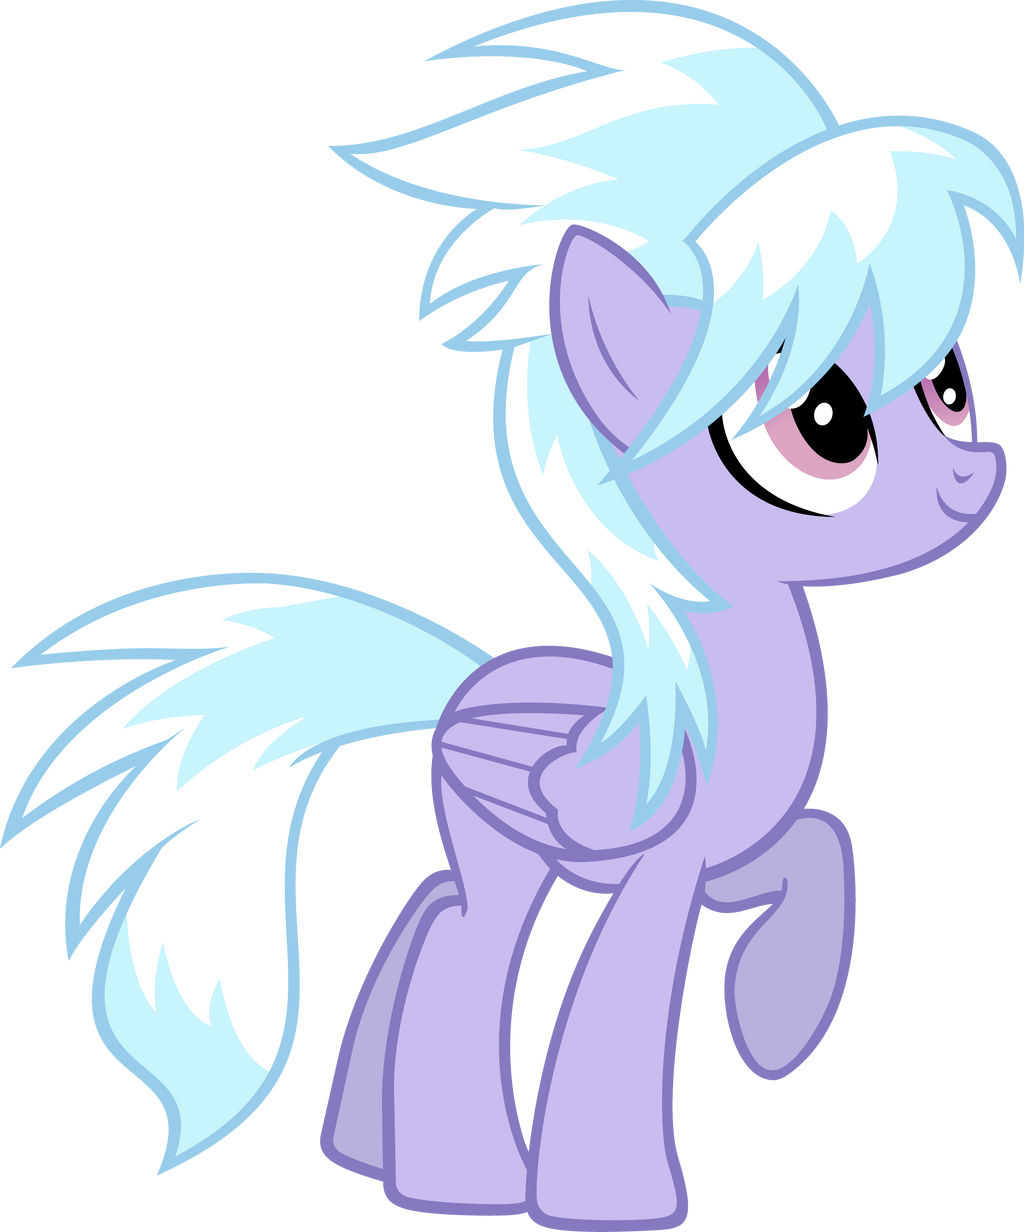 Cloudchaser is up to something. by Flutterflyraptor on